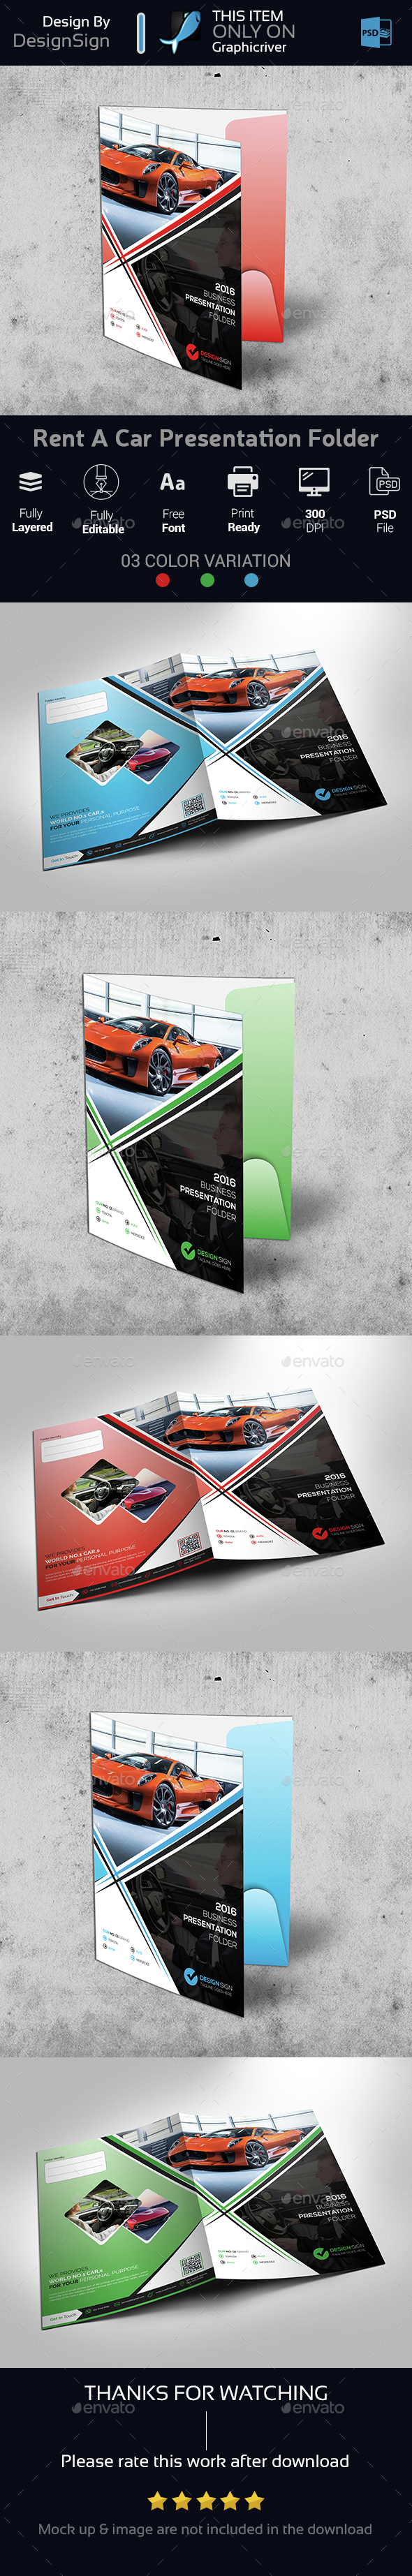 Rent A Car Presentation Folder - Stationery Print Templates